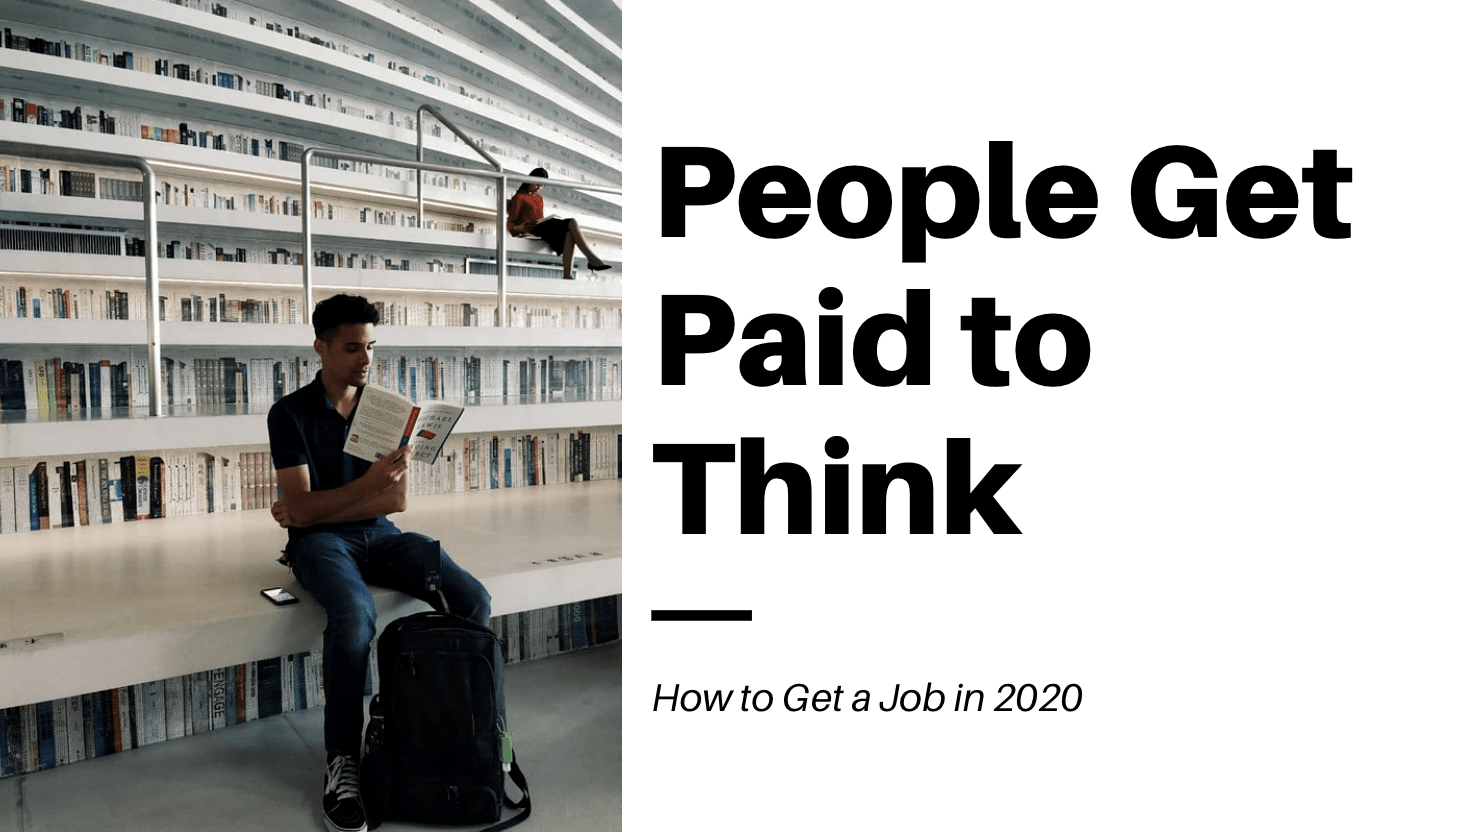 How-to-Get a-Job-People-Get-Paid-to-Think-Kenny-Soto